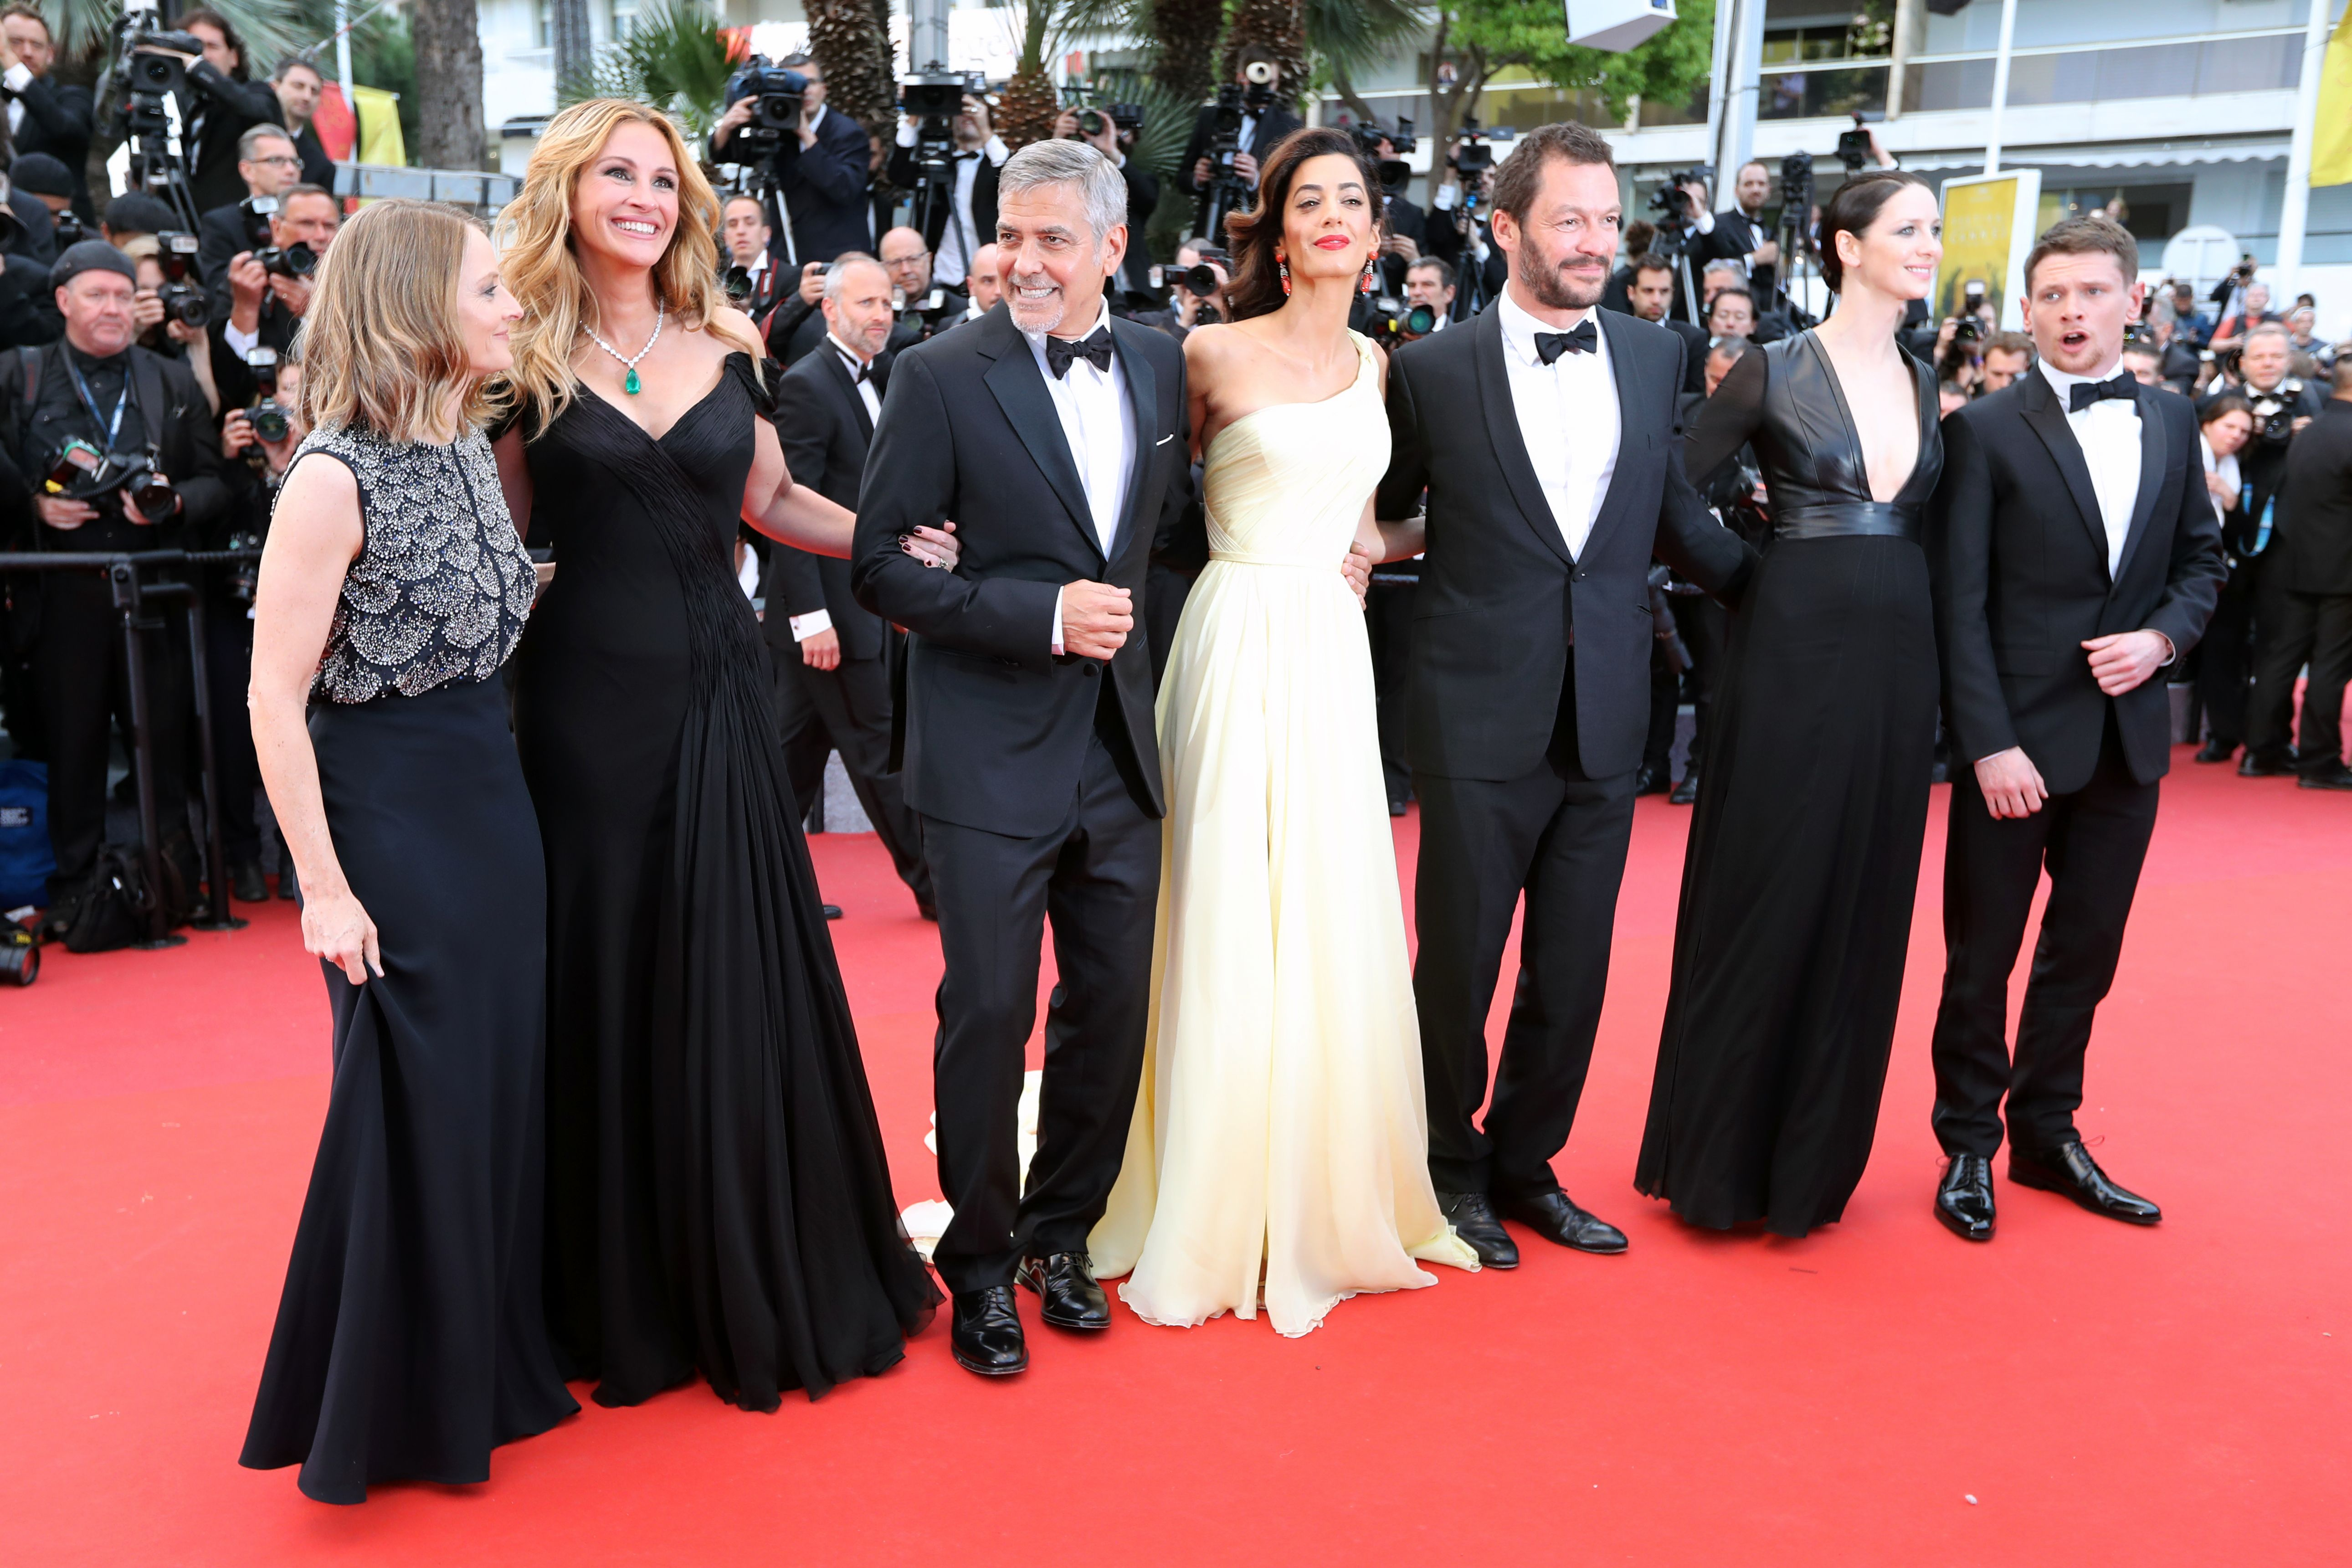 Jodie Foster, Julia Roberts, George Clooney, Amal Clooney, Caitriona Balfe, Dominic West, Jack O'Connell